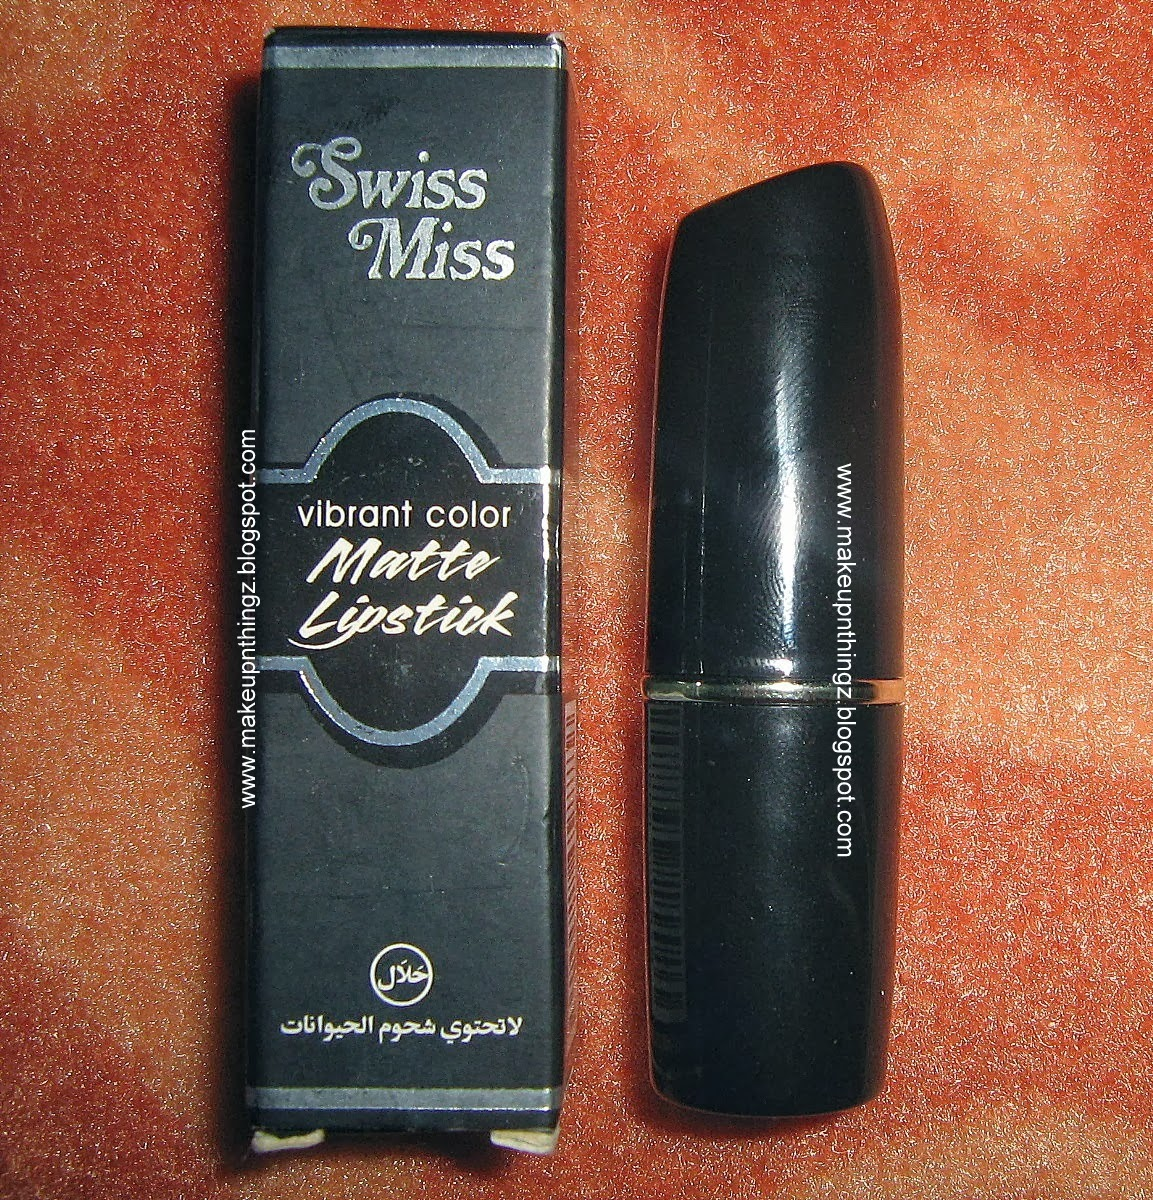 Swiss miss matte lipstick m 263 pretty pink review swatches for Mac due the box